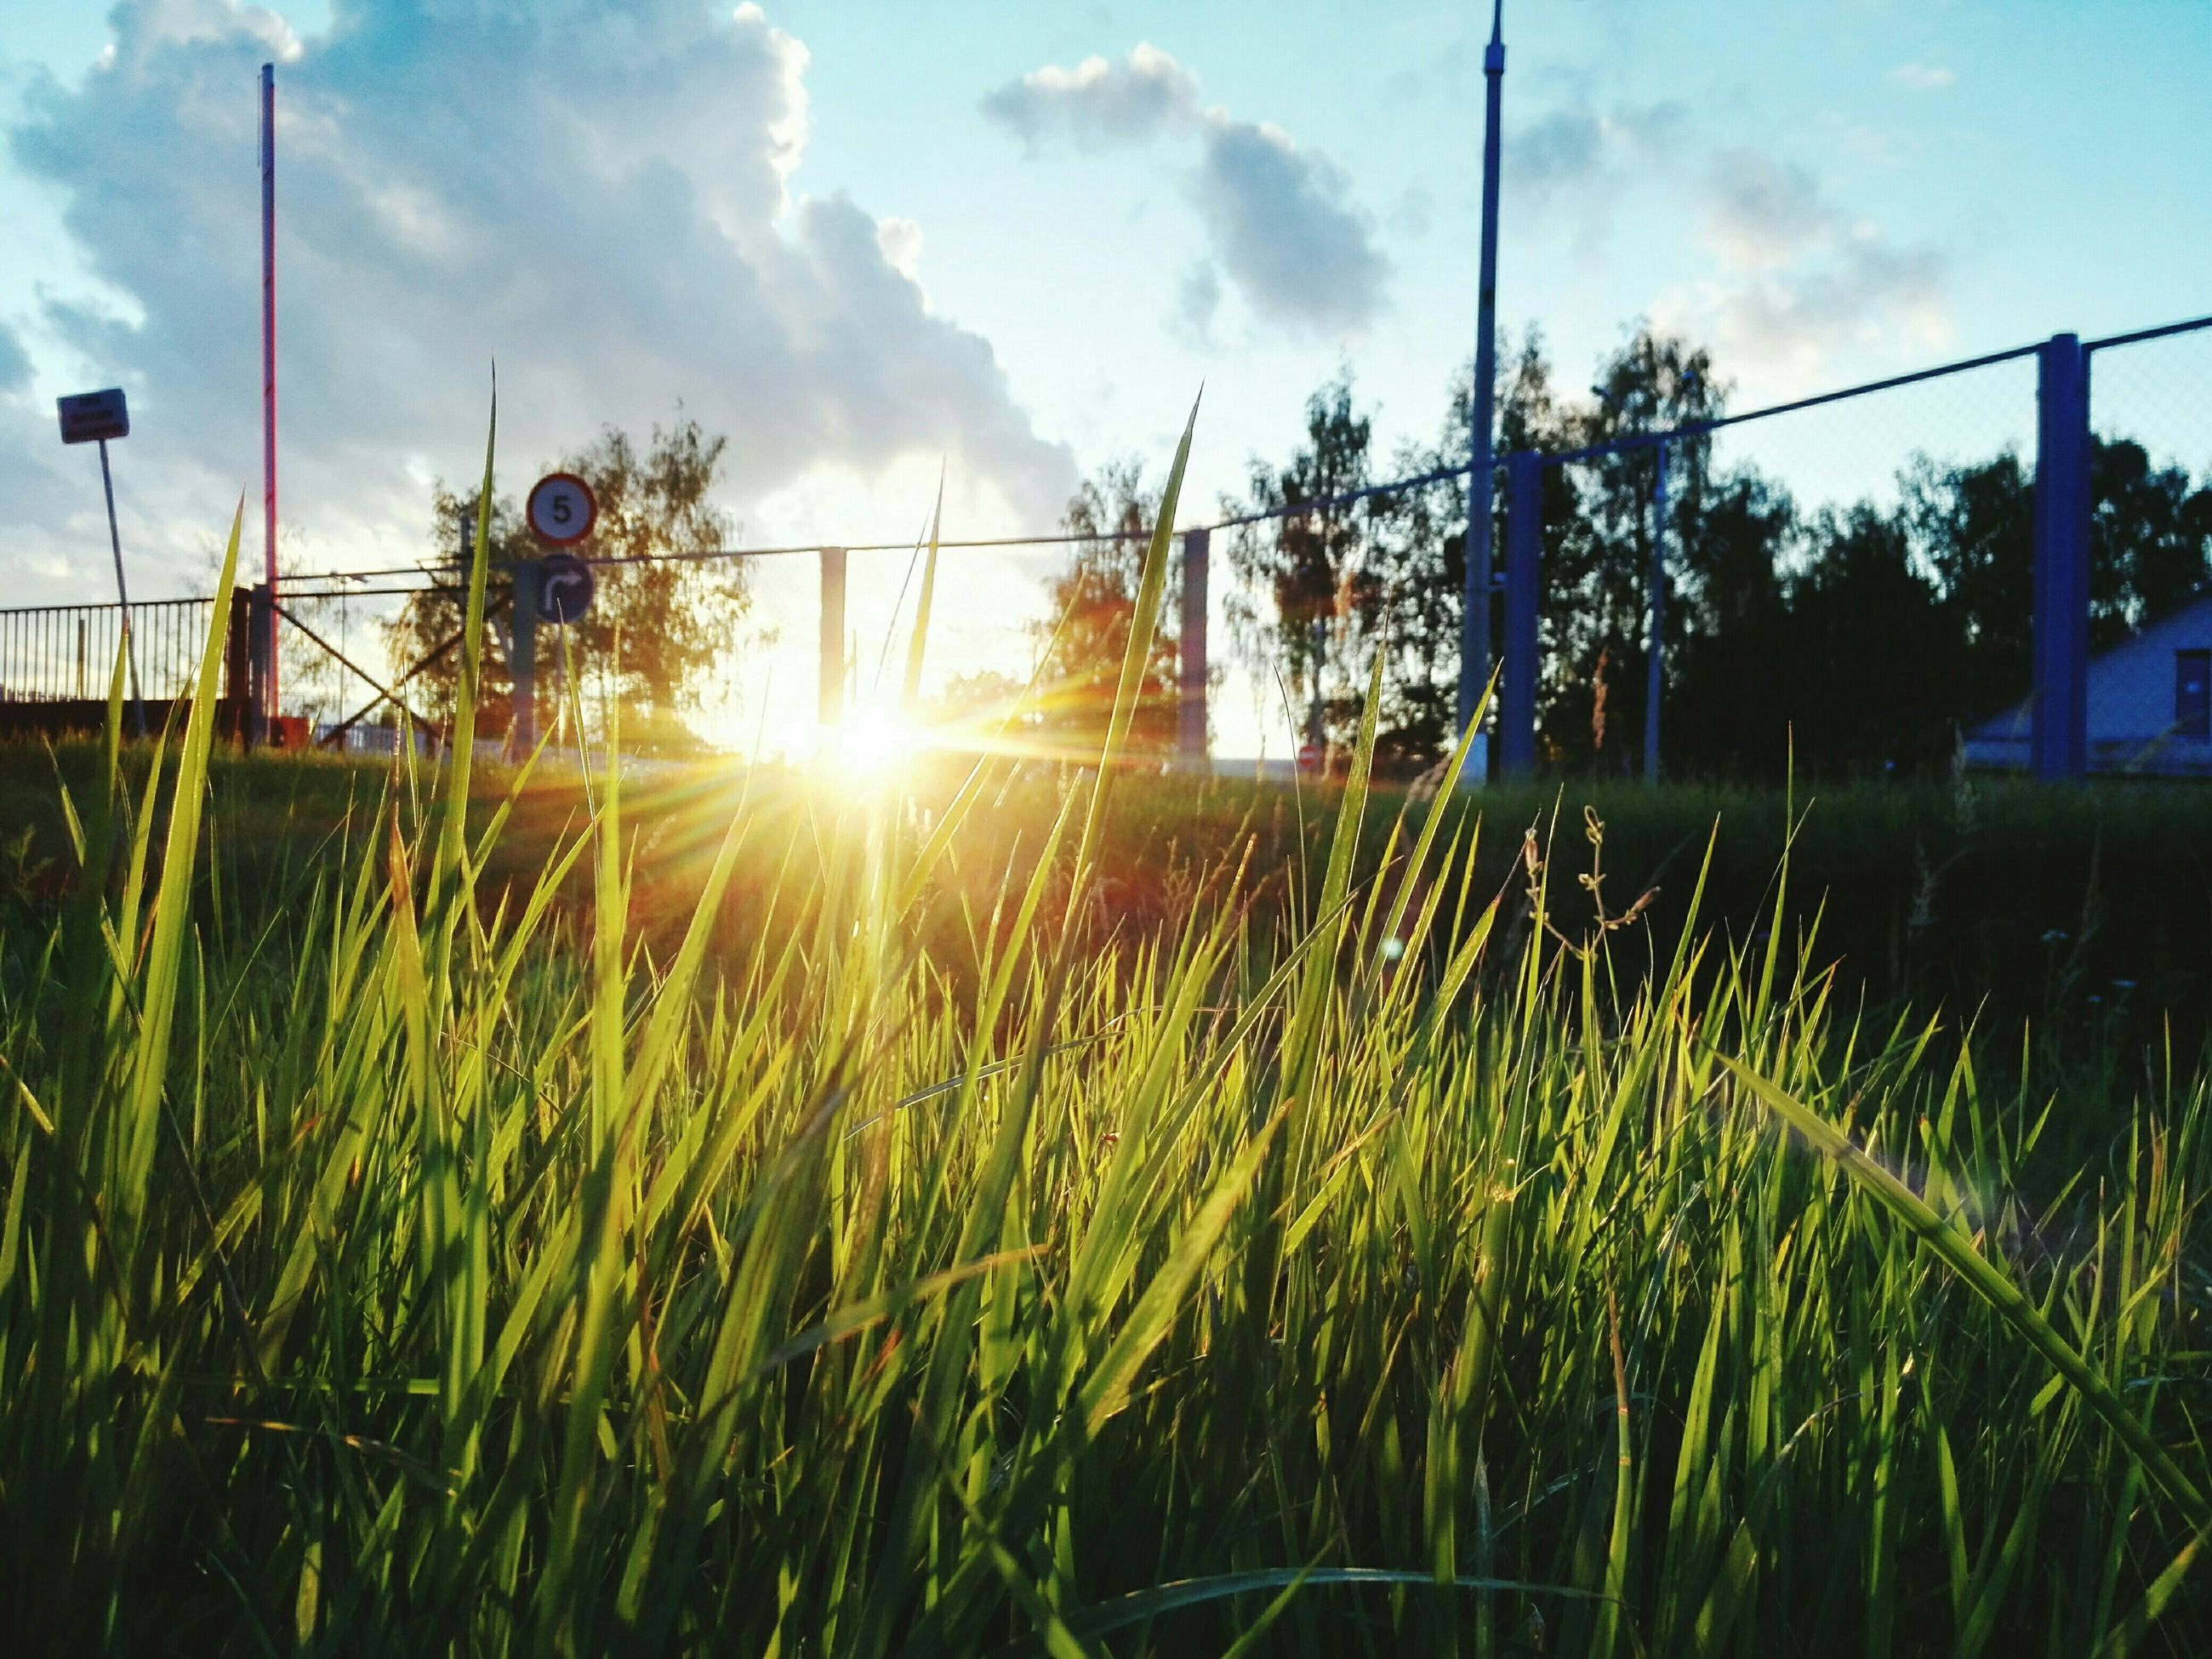 sun, sky, grass, field, growth, sunset, sunbeam, lens flare, sunlight, nature, plant, tranquility, beauty in nature, cloud - sky, tranquil scene, rural scene, landscape, scenics, green color, cloud